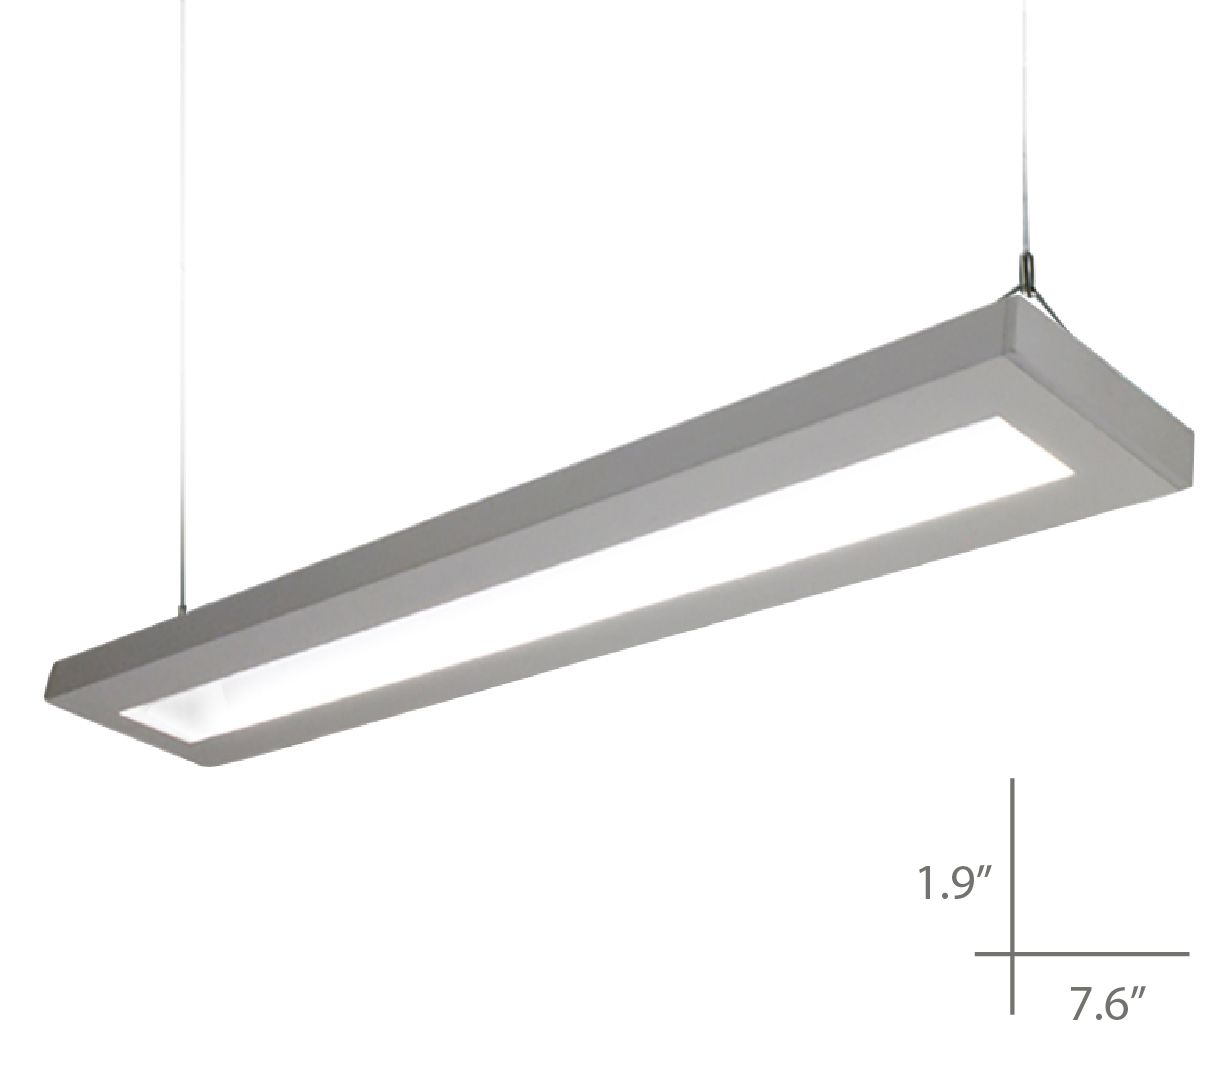 Alcon Lighting 12113-4 NLP Architectural LED 4 Foot Linear Suspended ...